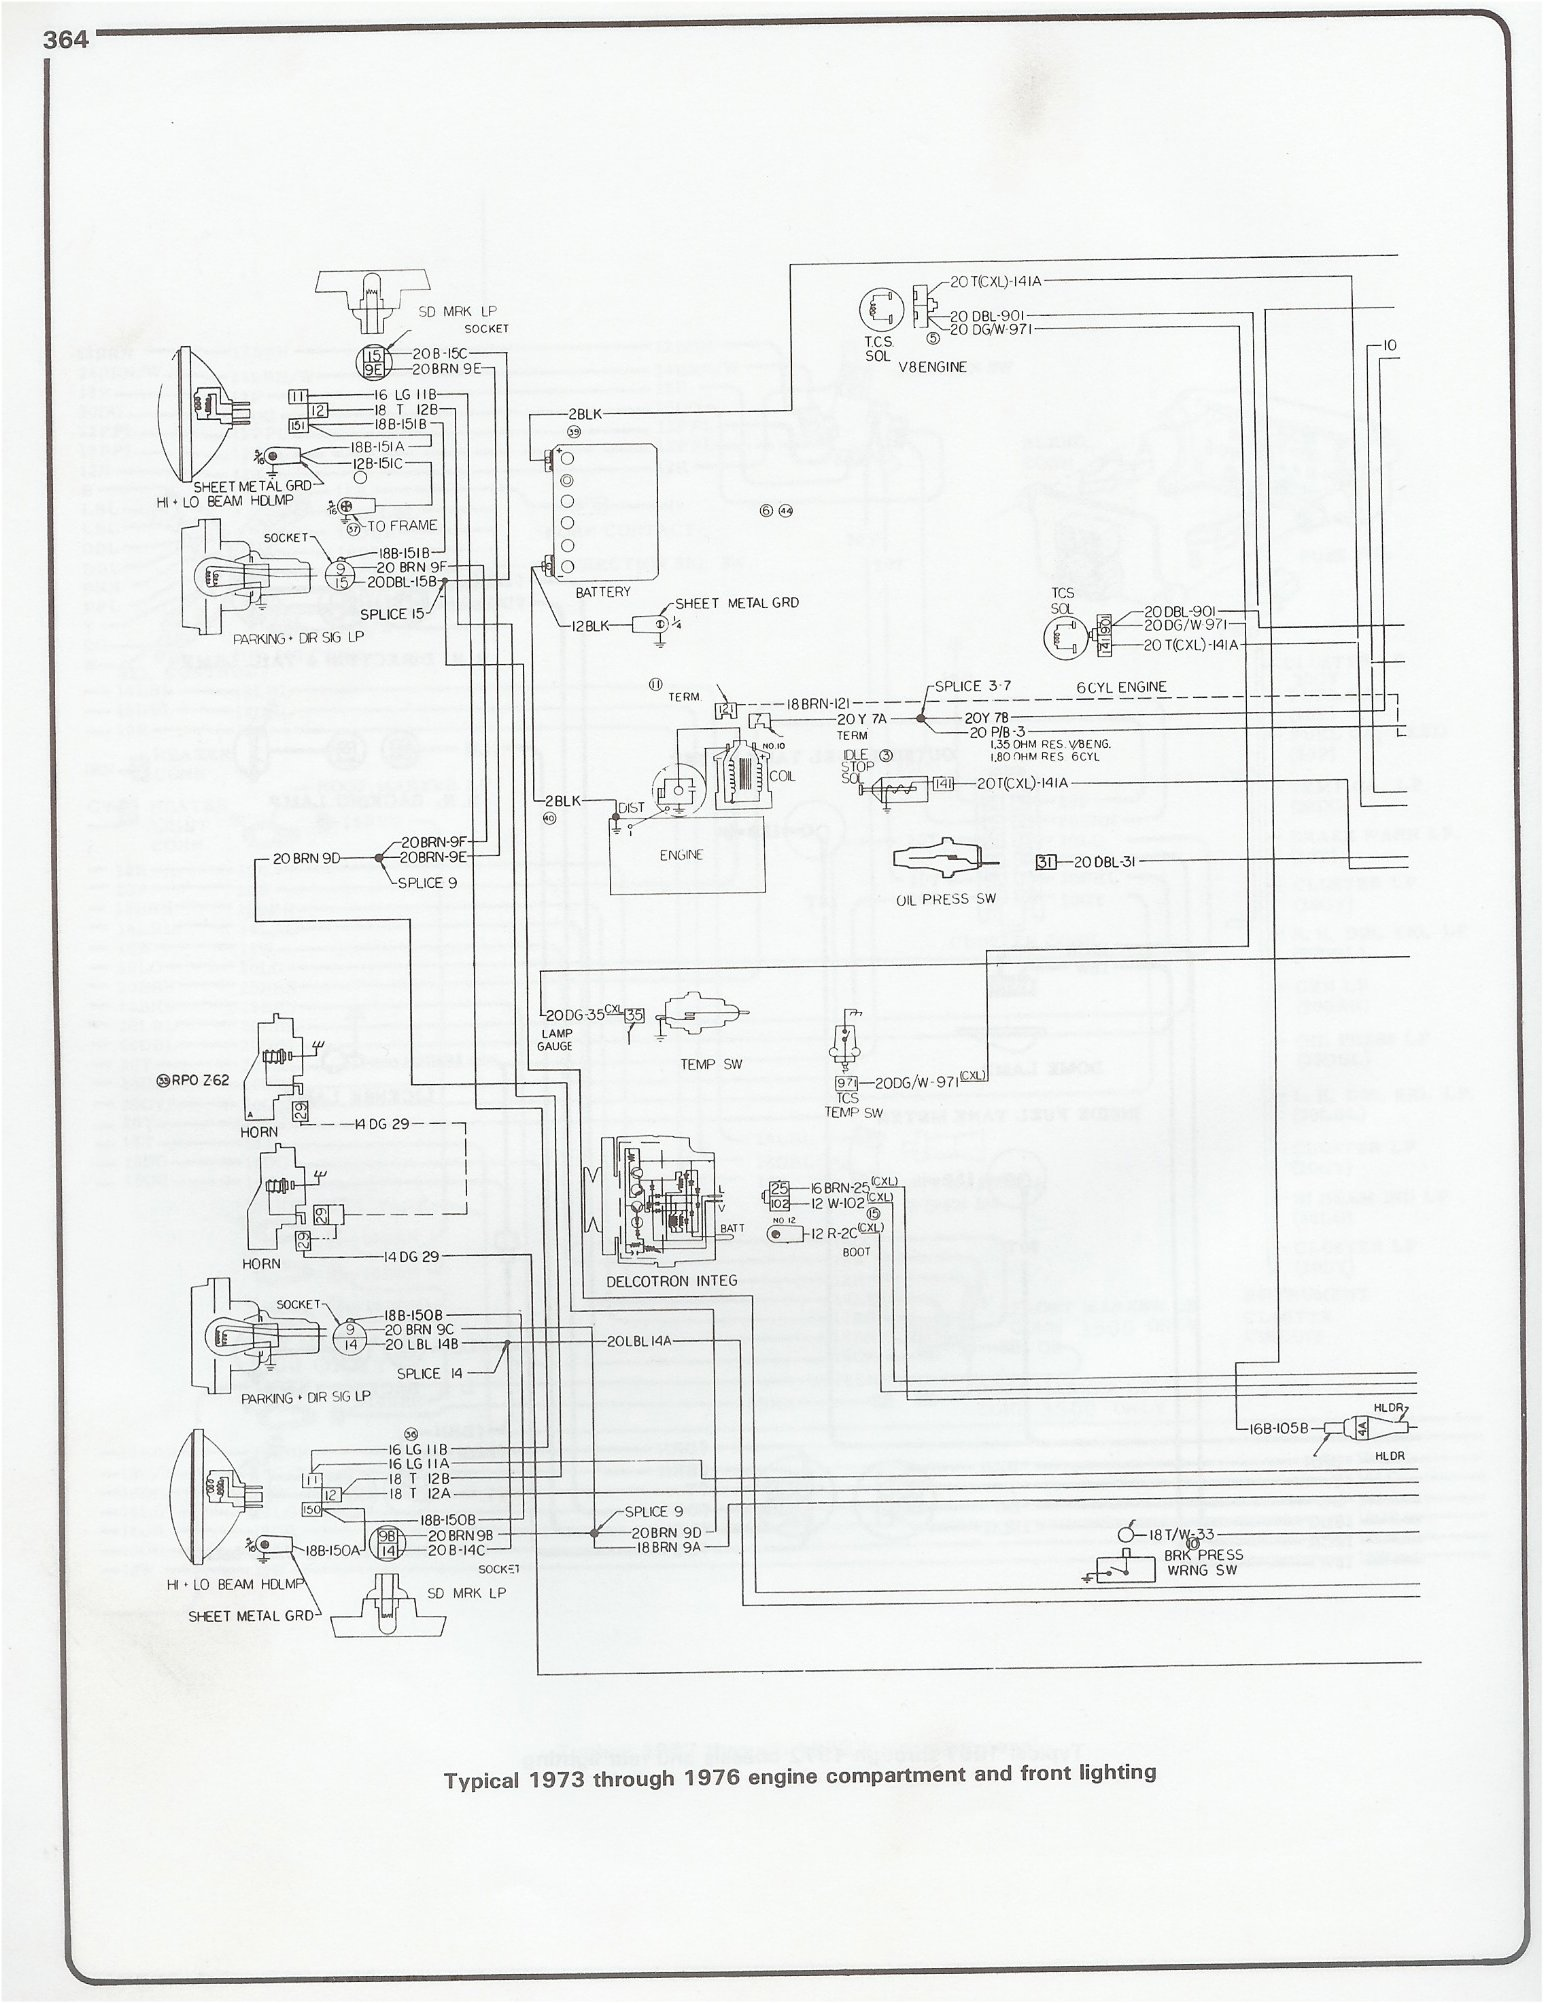 complete 73 87 wiring diagrams chevy truck wiring schematics 73 76 engine and front lighting